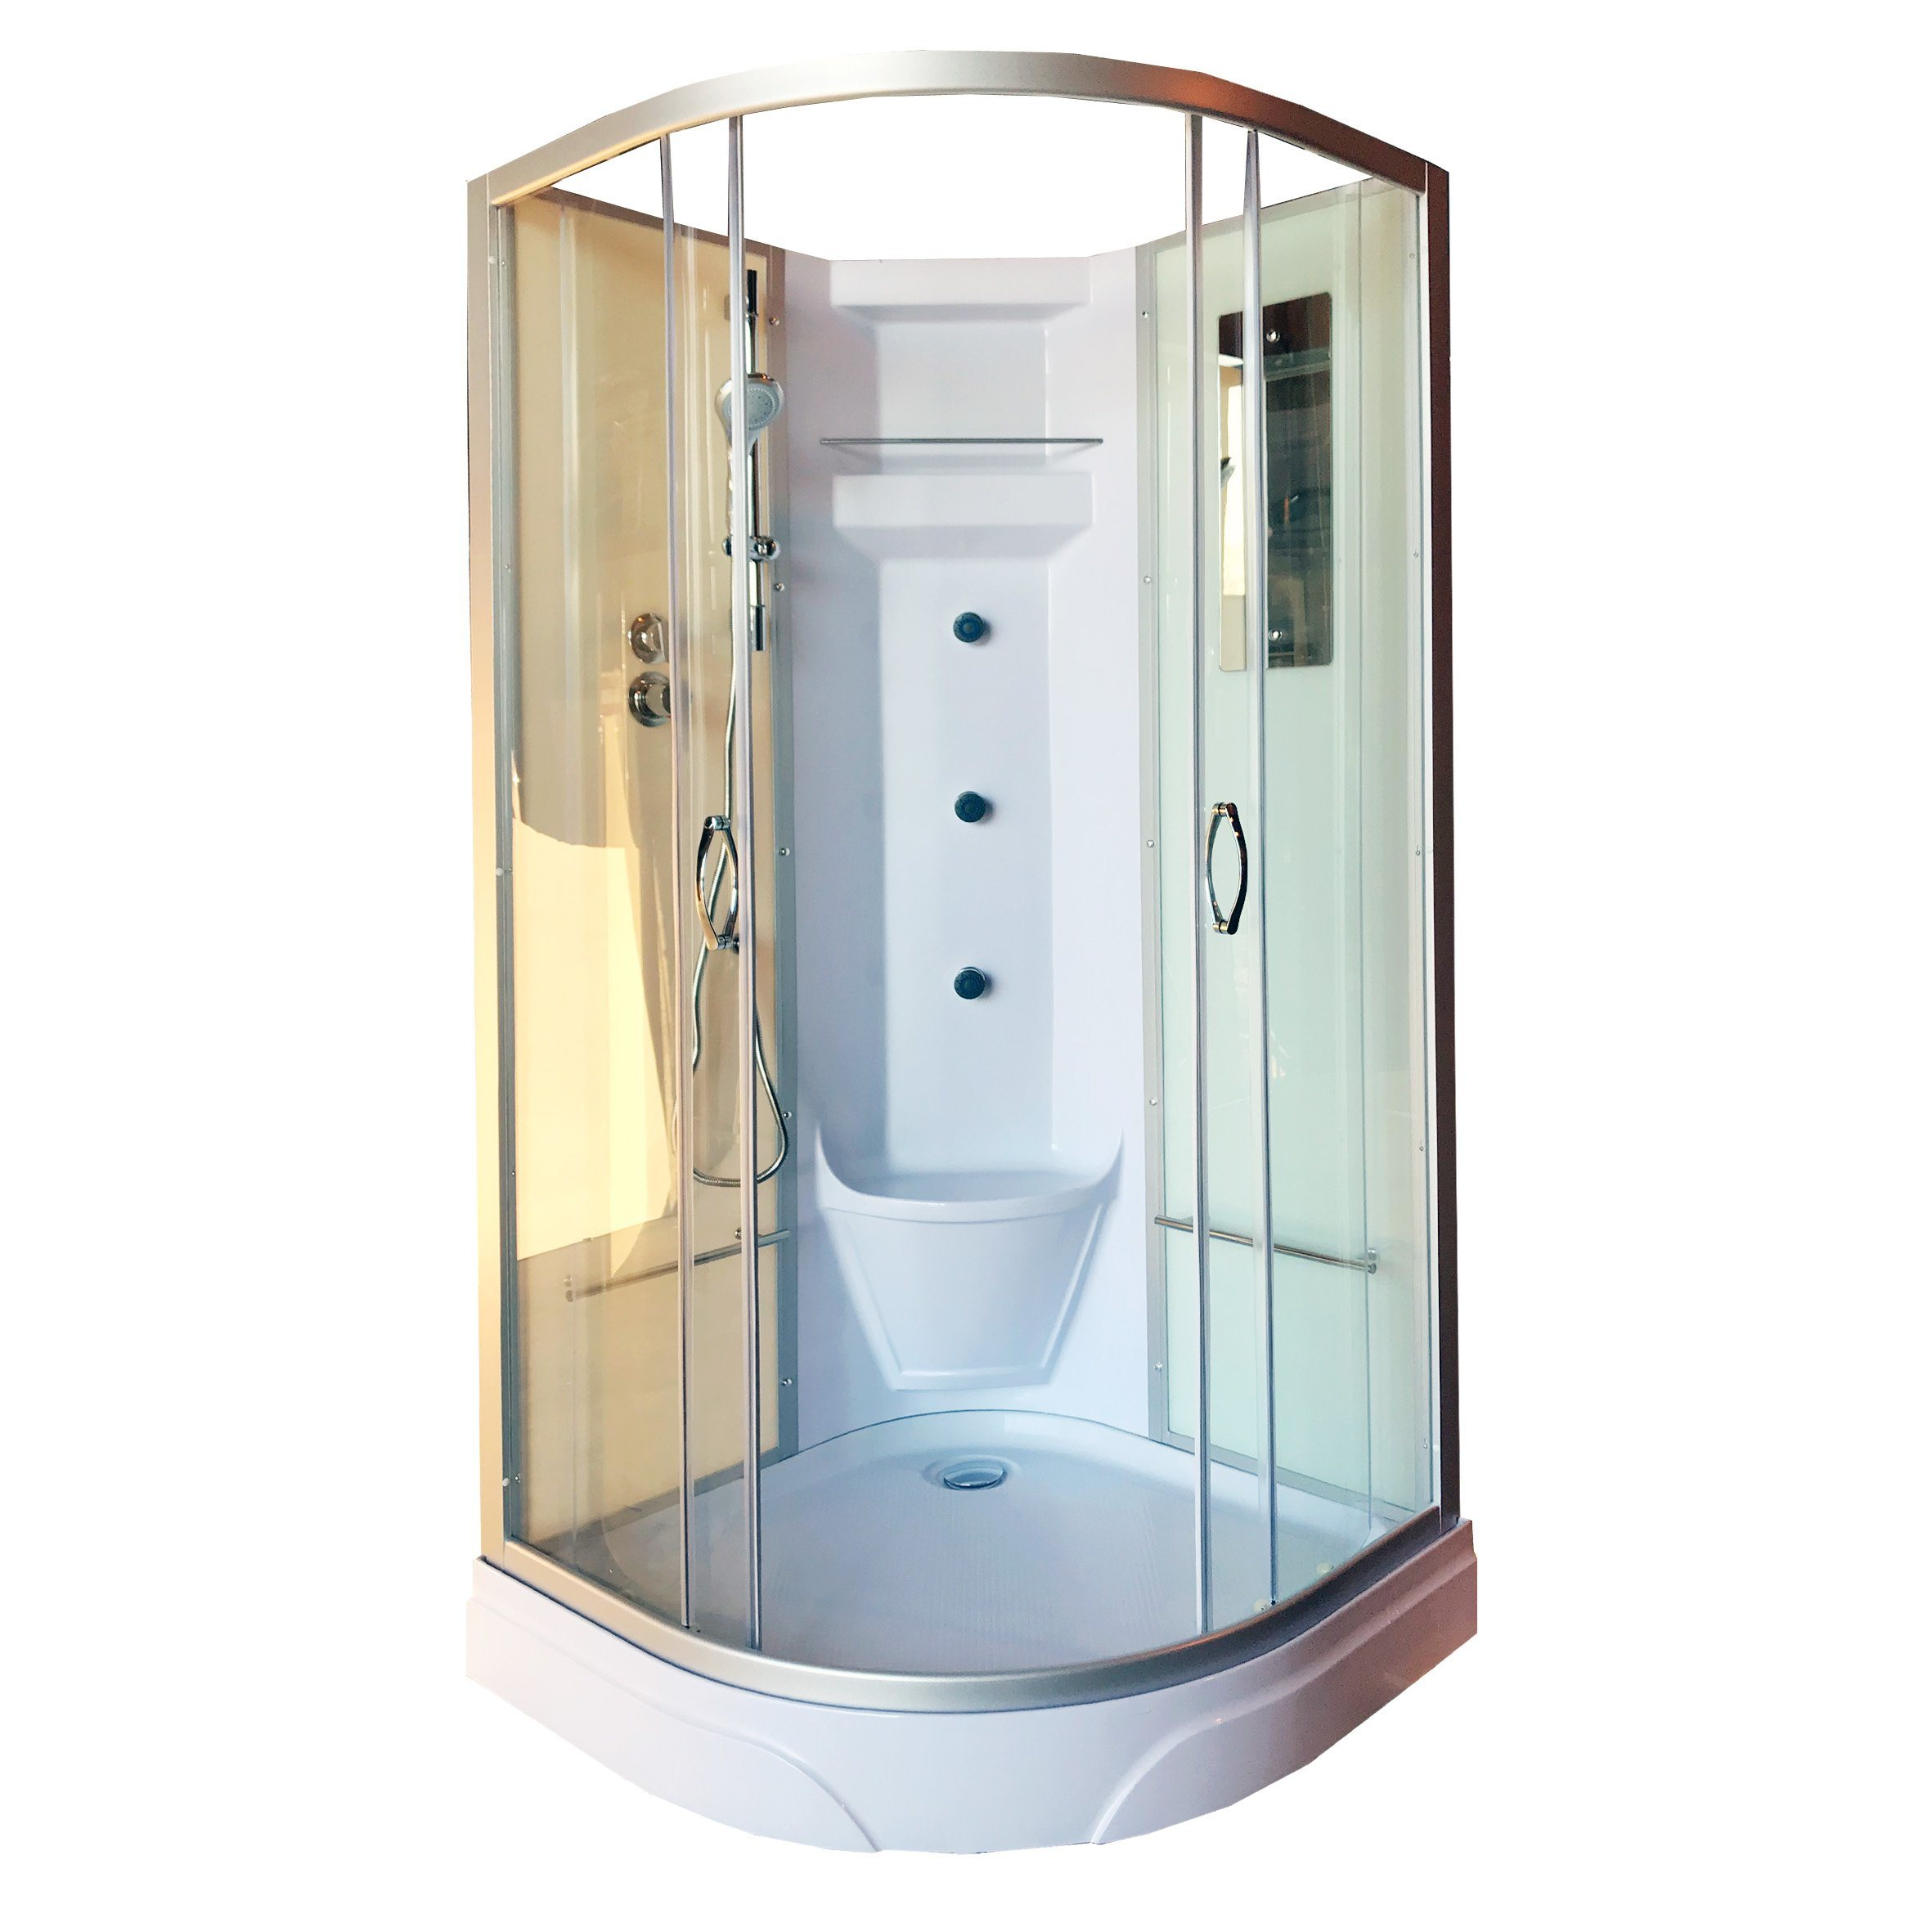 China Top Shower Room Cabin Bathroom Shower Room Price Shower Room Enclosure China Shower Cubicle Aluminum Profile Shower Room Enclosure